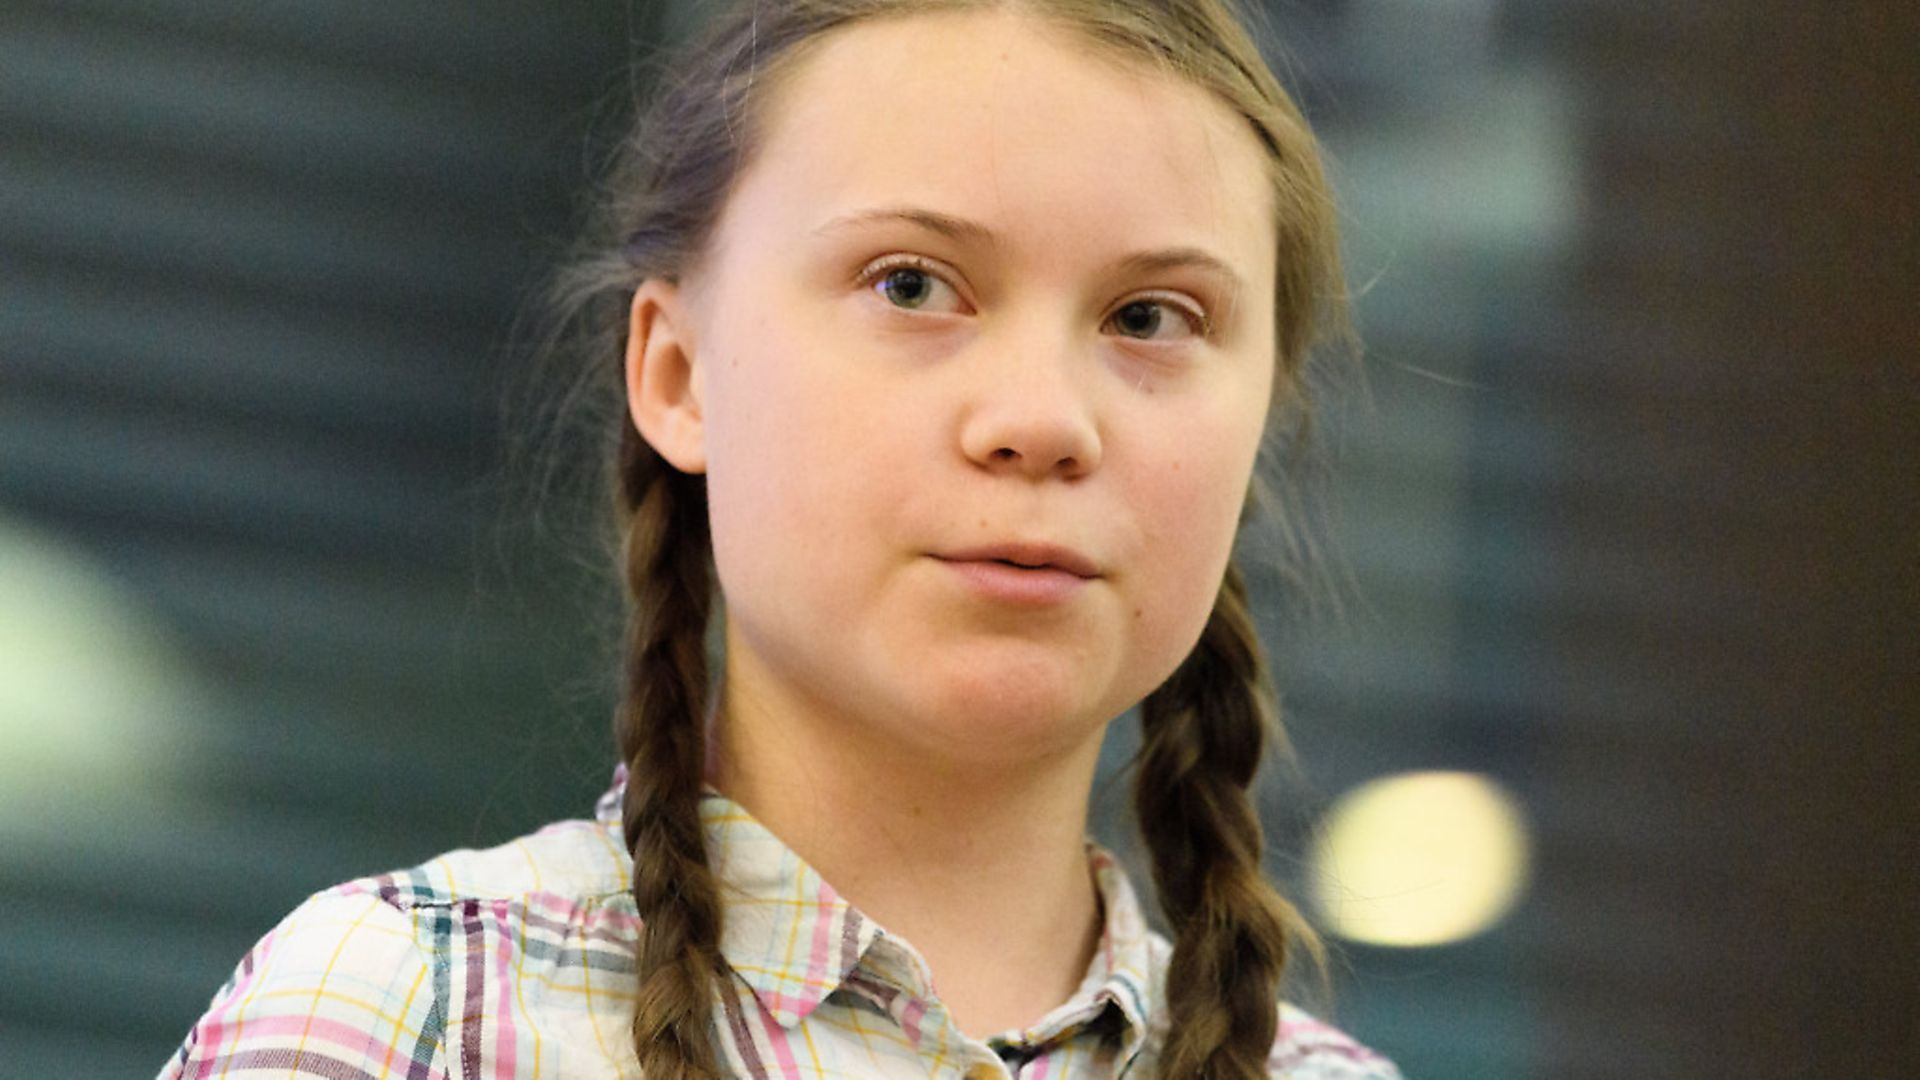 Swedish environmental campaigner Greta Thunberg. (Photo by Leon Neal/Getty Images) - Credit: Getty Images